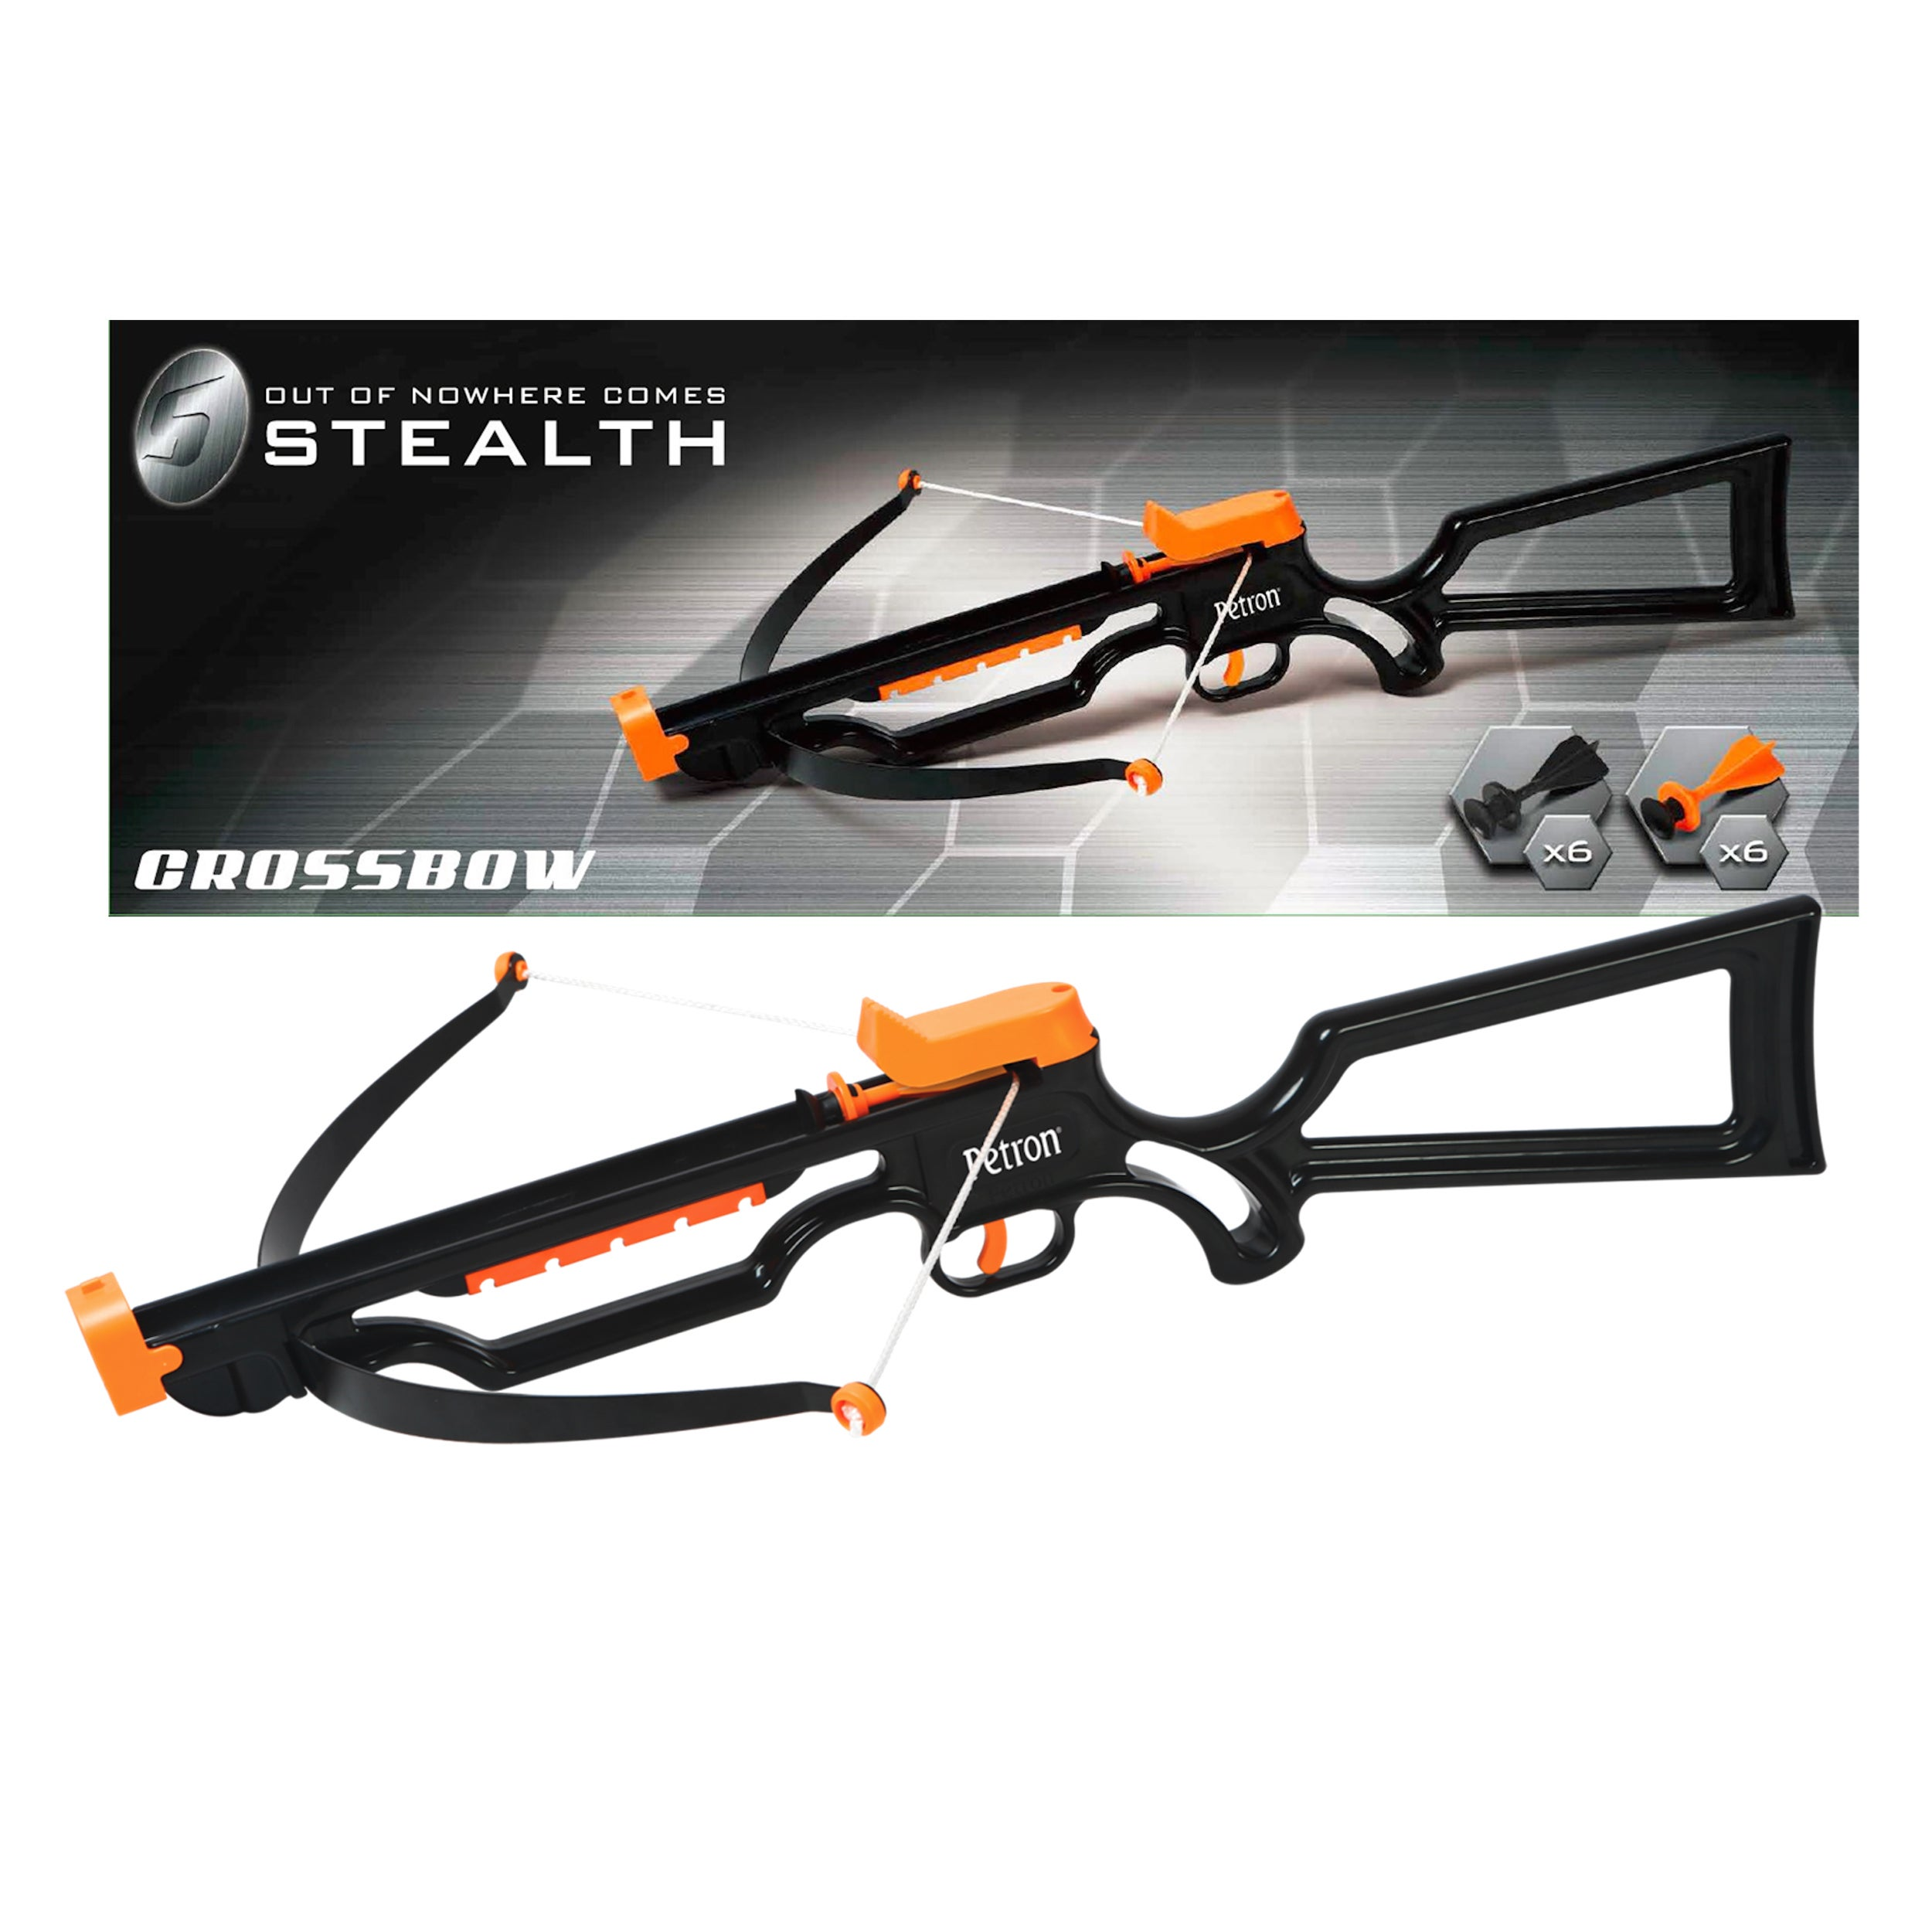 PETRON Stealth Crossbow (1), Silver steel